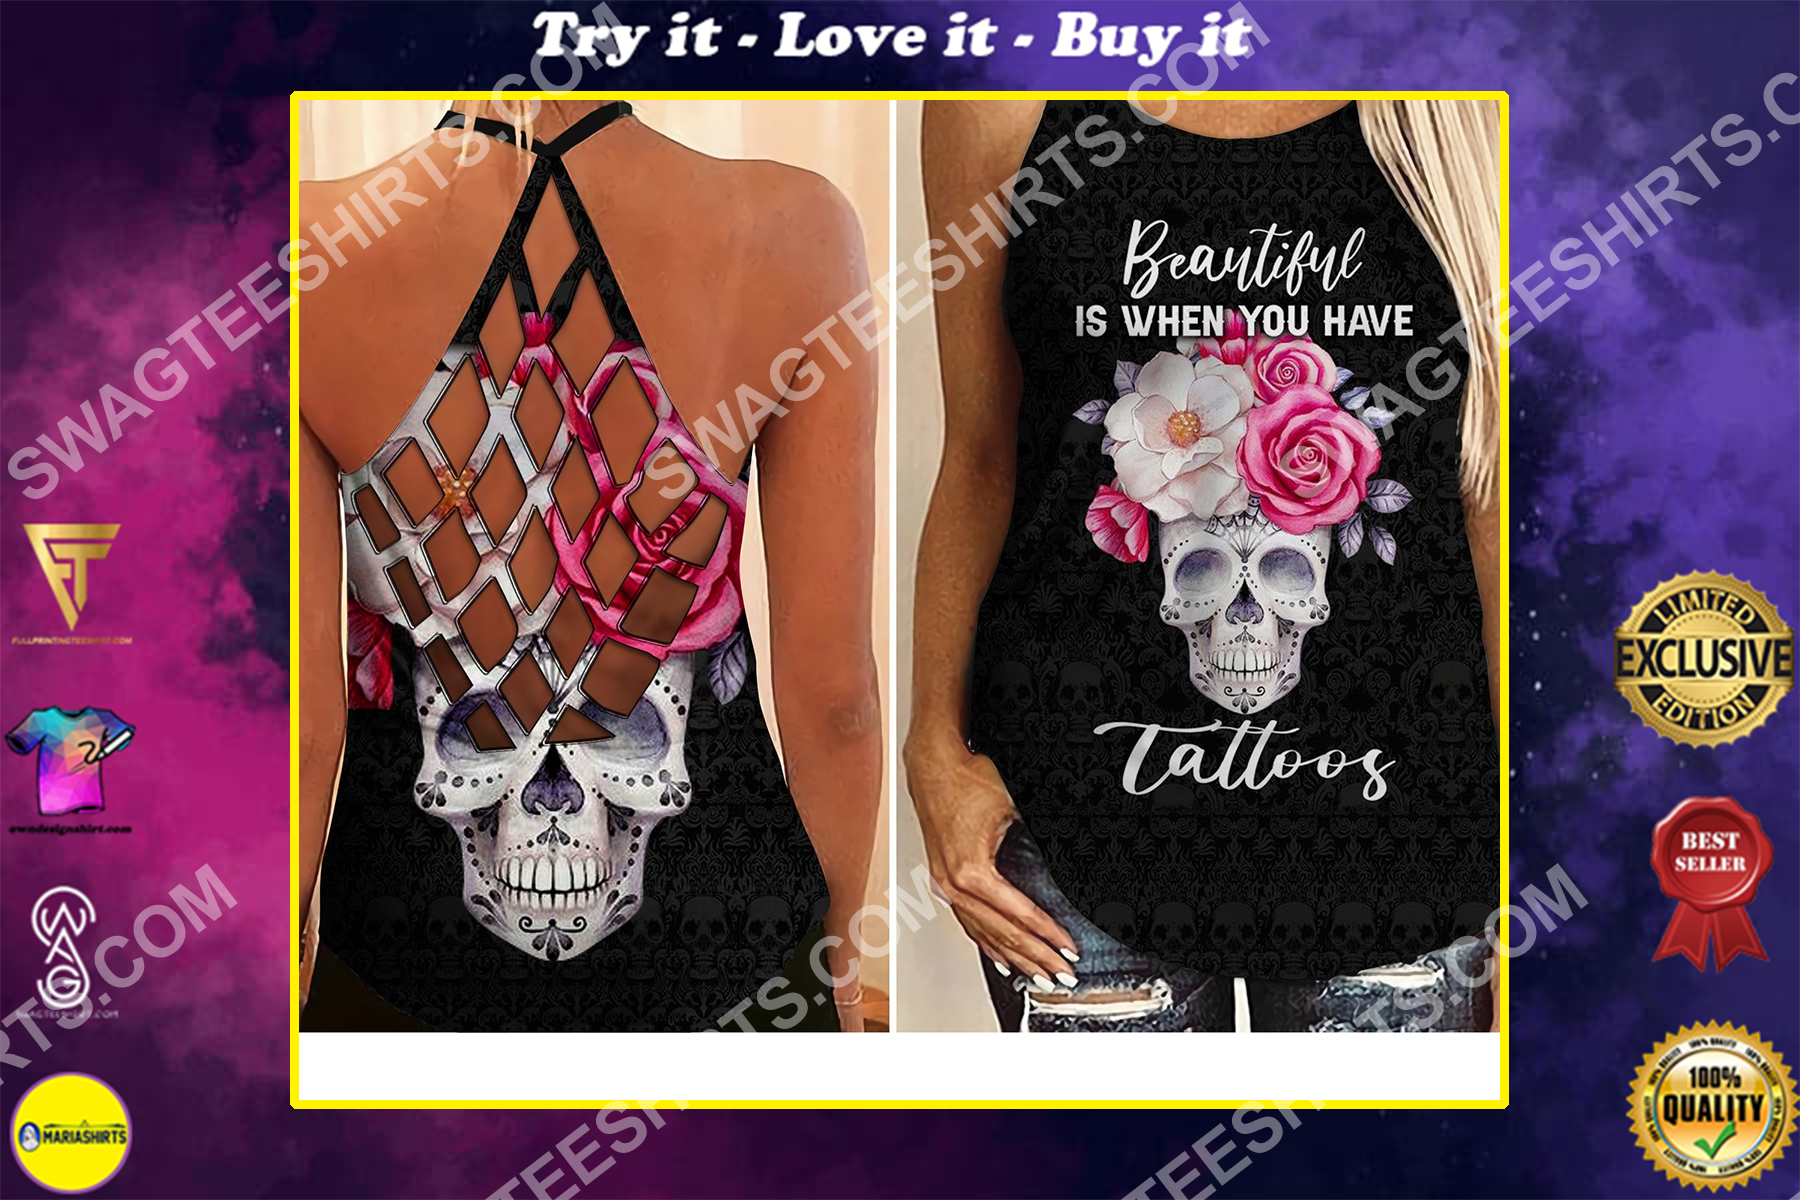 floral skull beautiful is when you have tattoos strappy back tank top